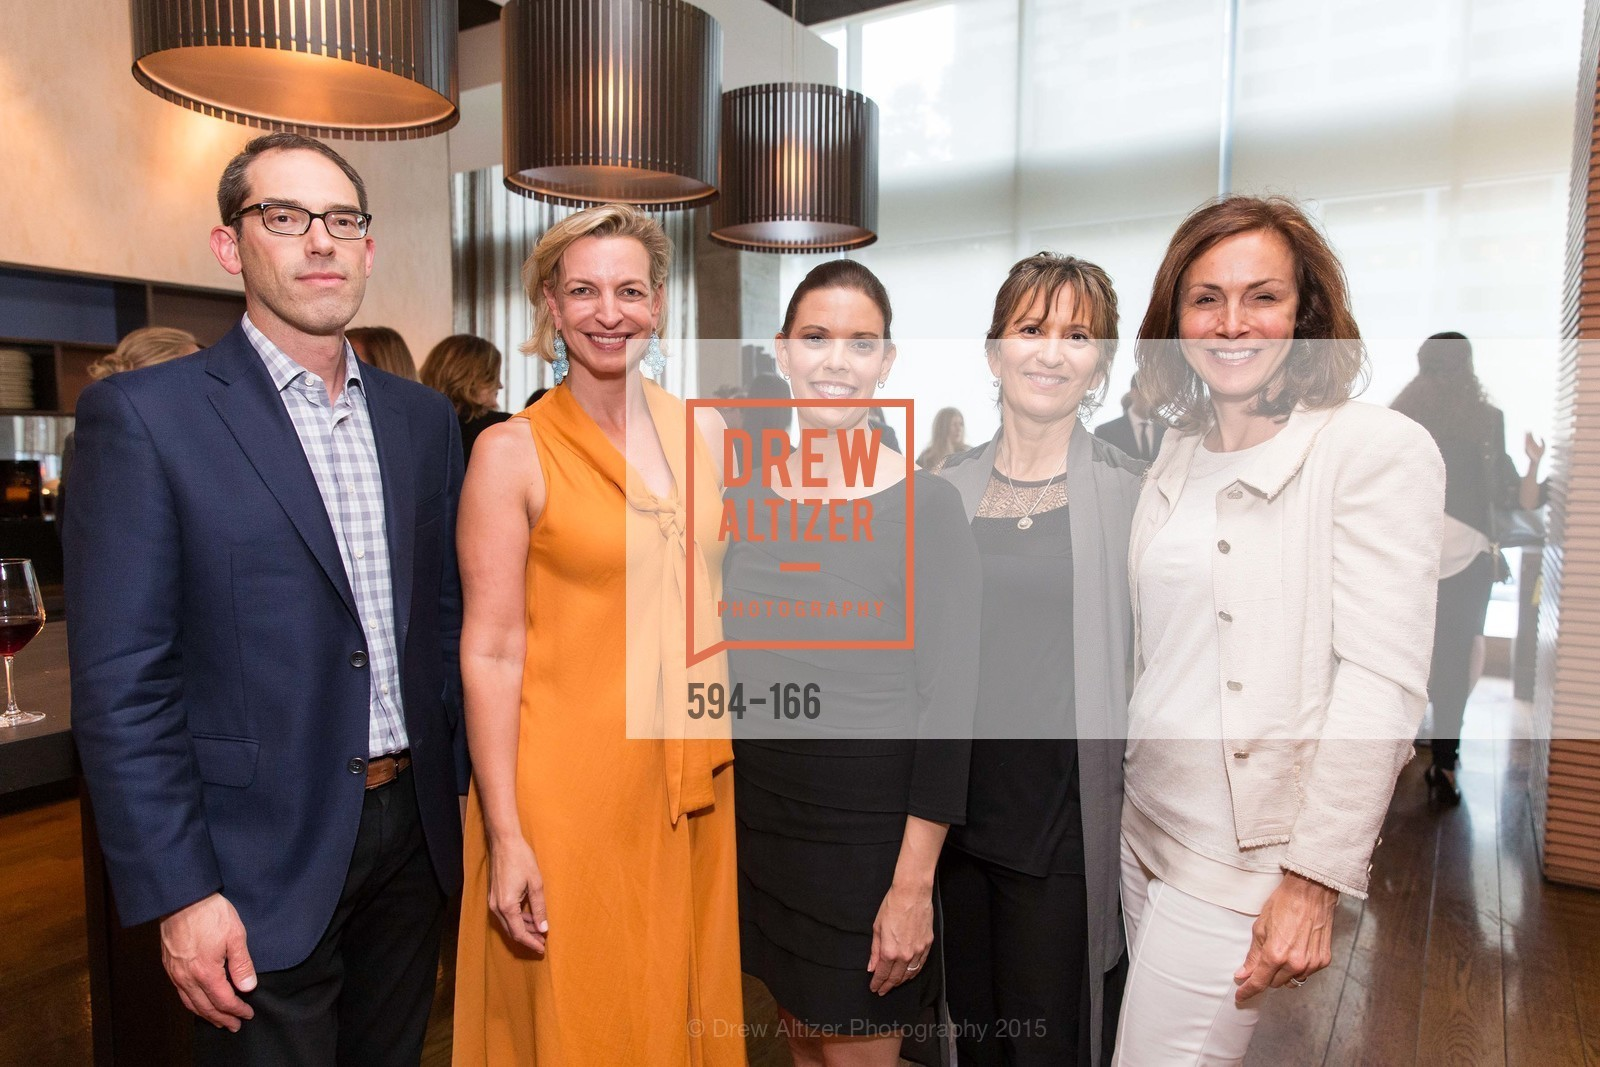 David Schwazbac, Michelle Paris, Sharon Behnke, Kim Miller, Elle Women in Tech, Prospect. 300 Spear Street, June 15th, 2015,Drew Altizer, Drew Altizer Photography, full-service agency, private events, San Francisco photographer, photographer california